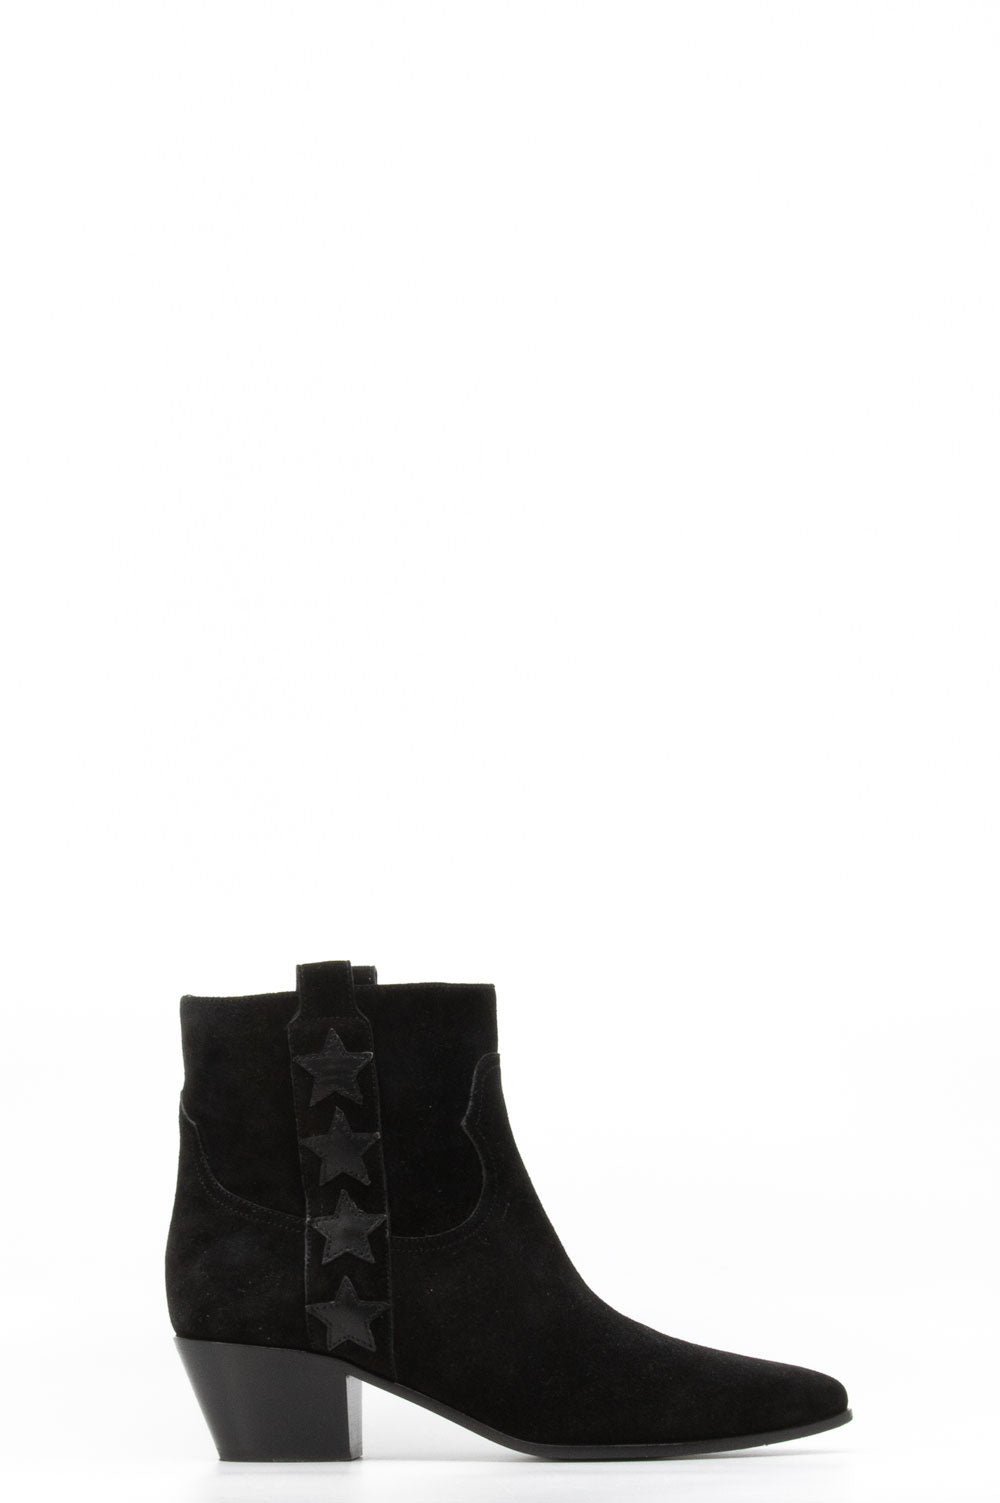 Saint Laurent Bootie in schwarzem Wildleder.